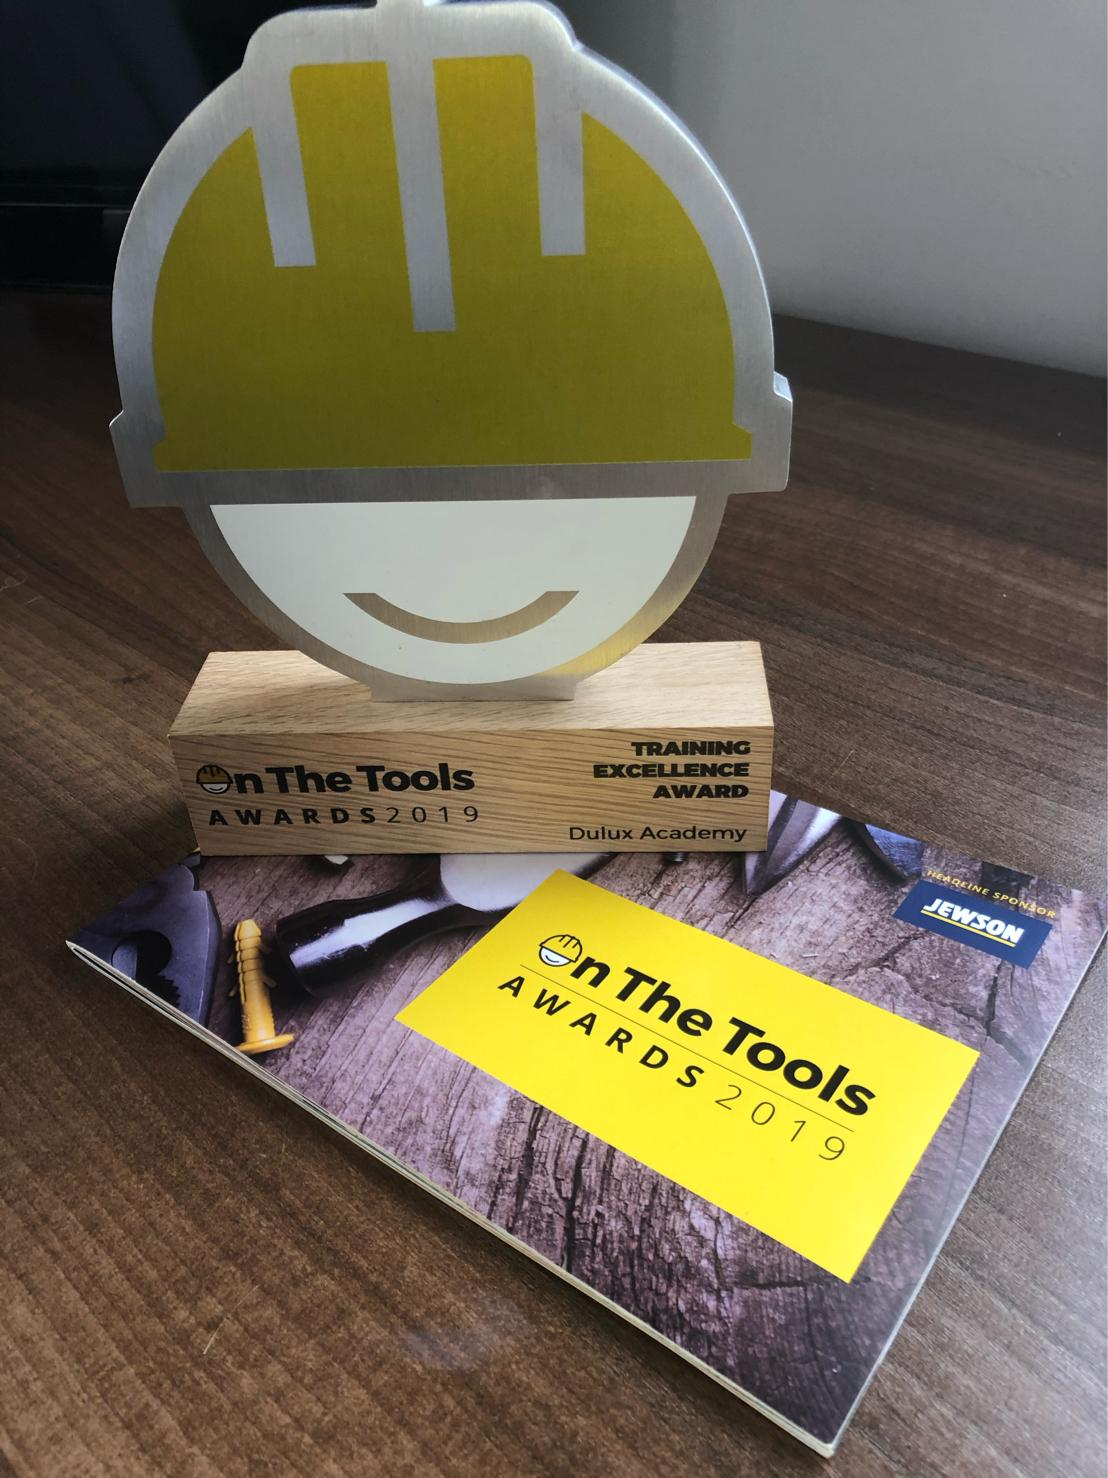 Dulux Academy has been announced as the winner of the On The Tools Training Excellence Award for the second year running.